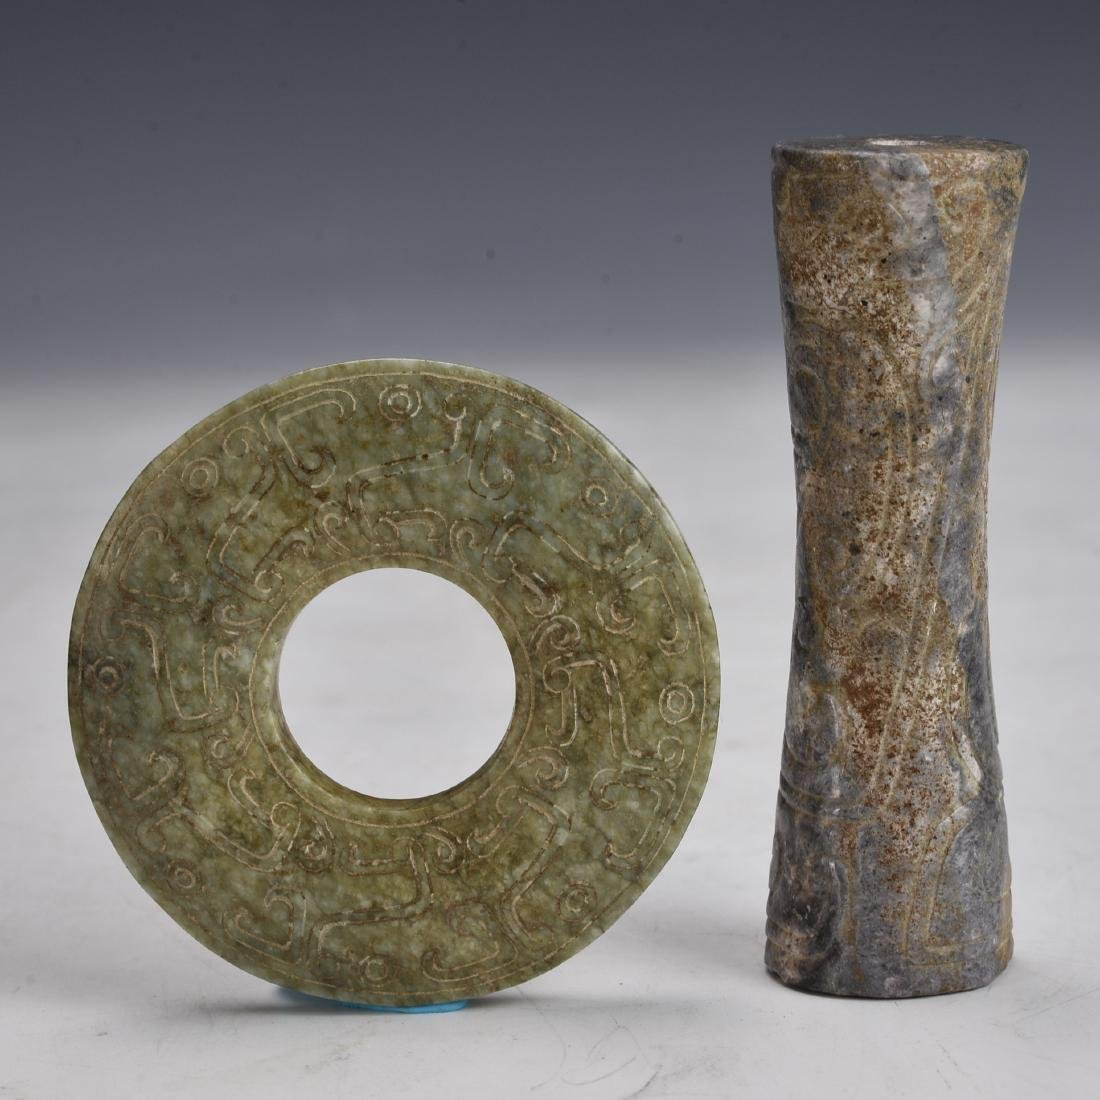 2 Pieces Chinese Archaic Jade